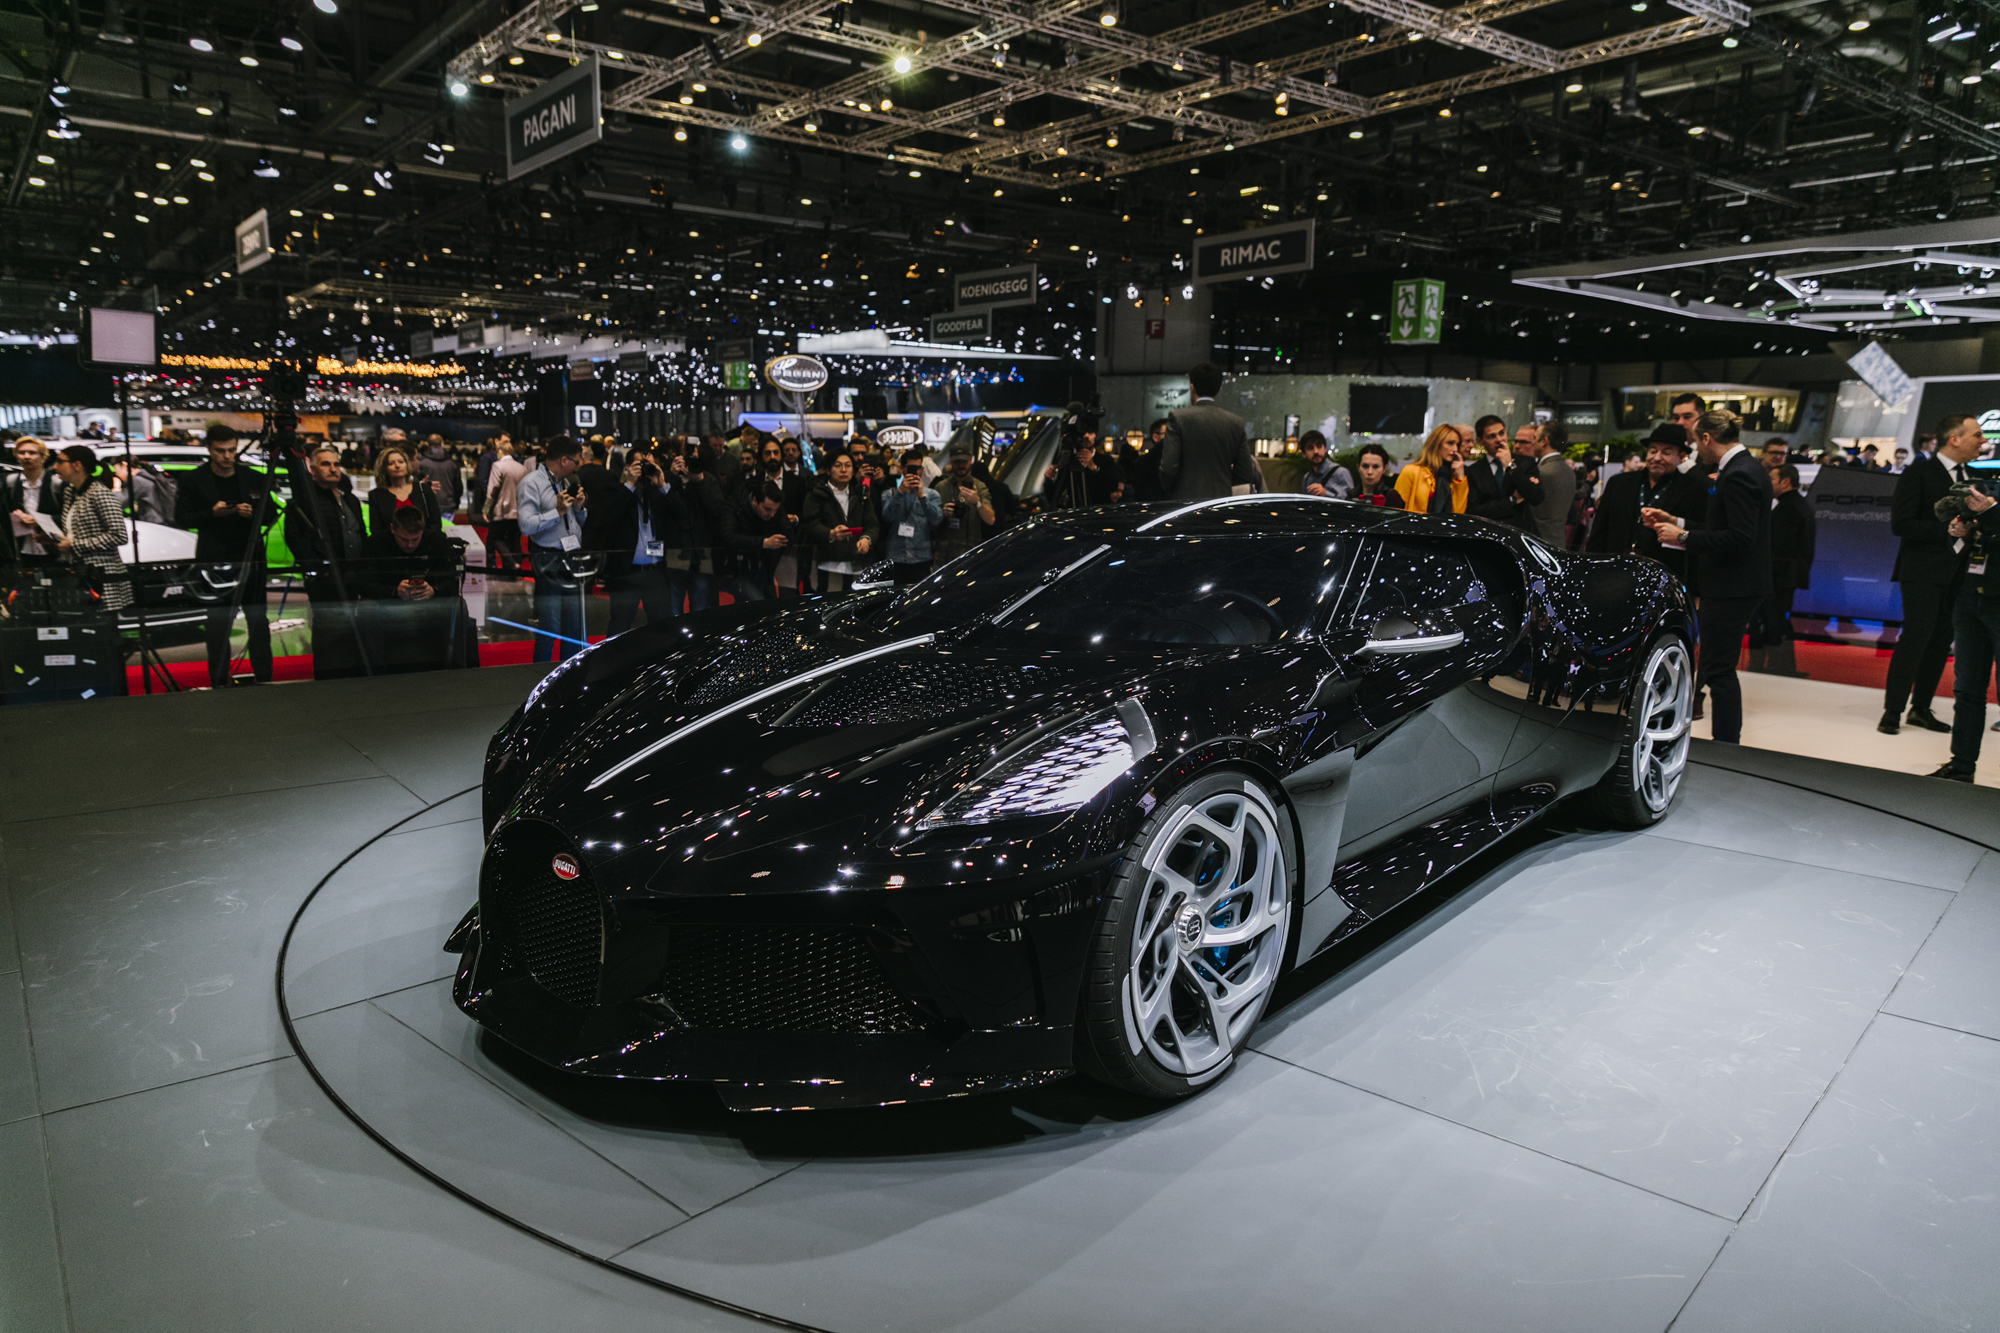 The Bugatti La Voiture Noire Has The Nicest Rear End In: Geneva 2019: Bugatti La Voiture Noire